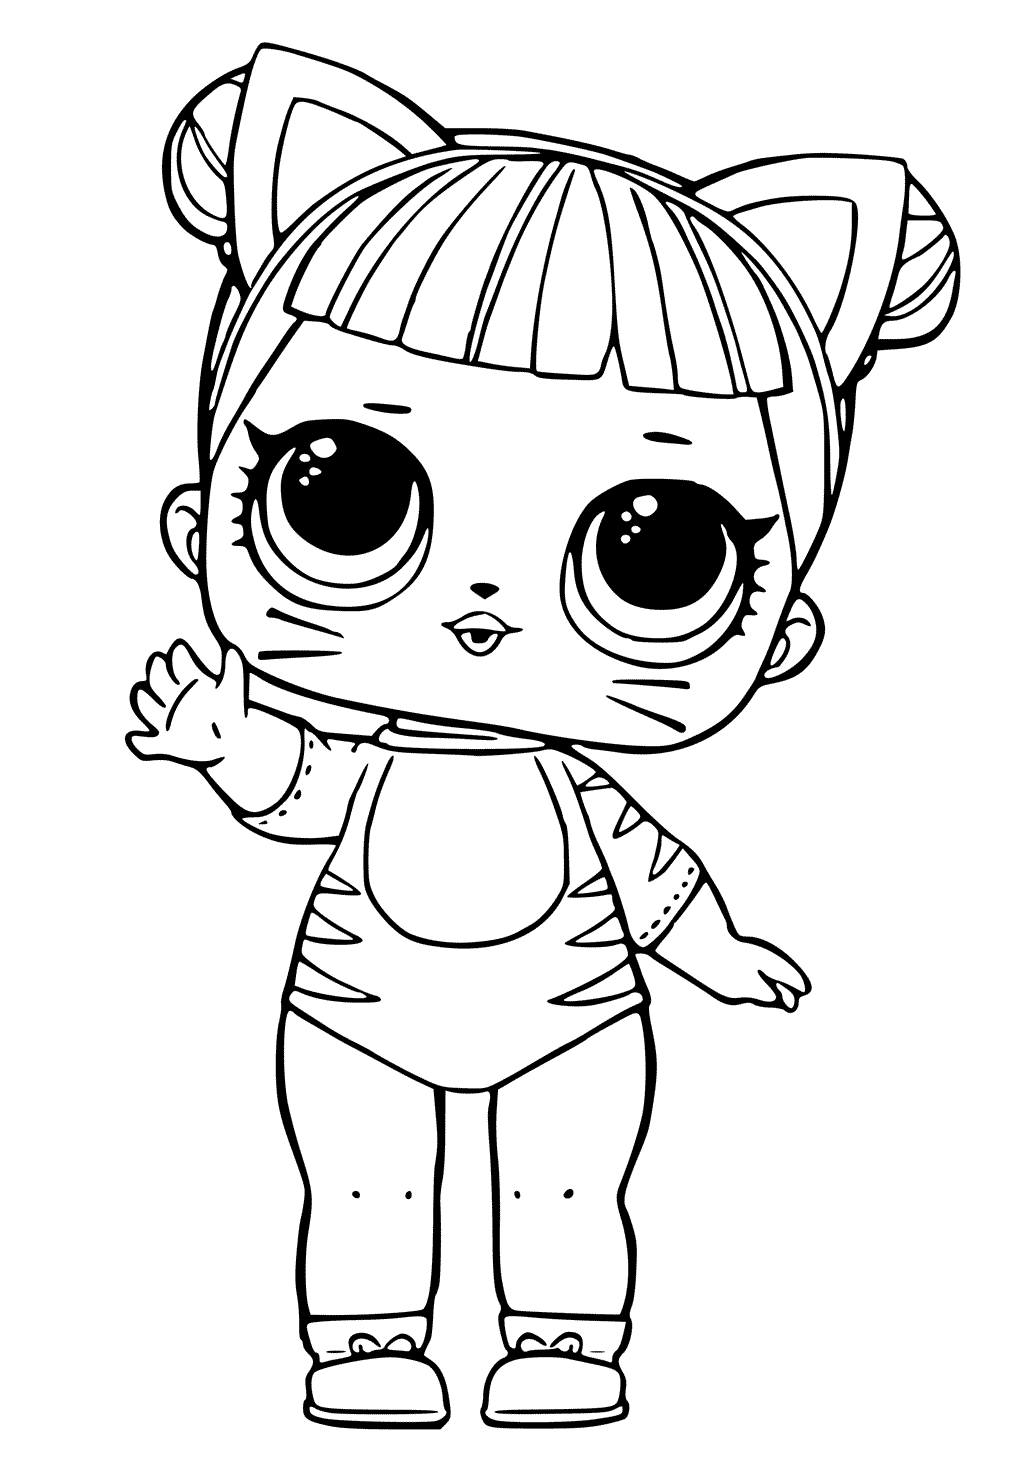 Lol dolls coloring pages printables lol dolls Lol